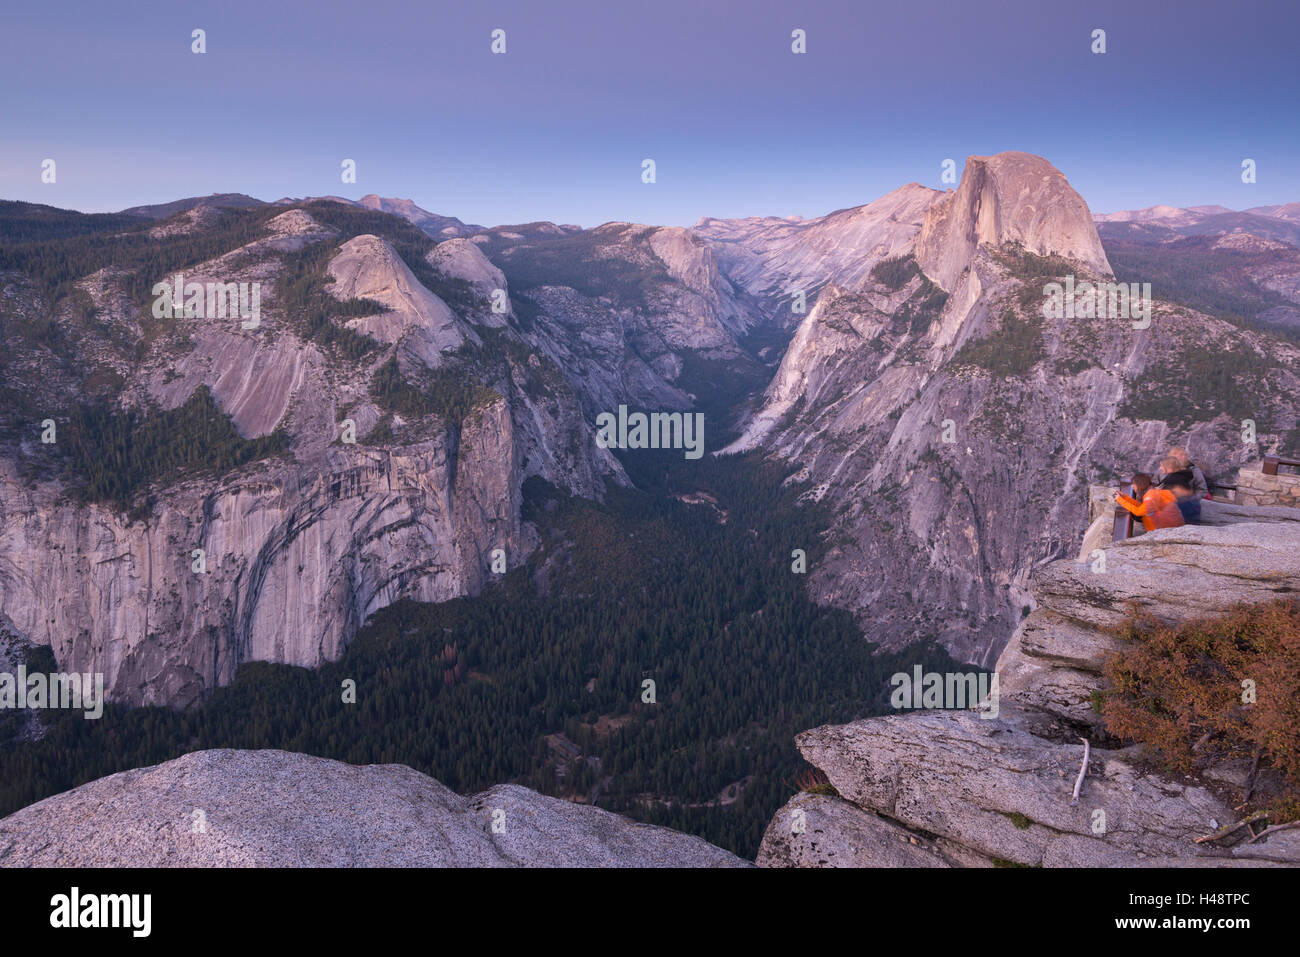 Tourists viewing Half Dome and Yosemite Valley from Glacier Point, Yosemite National Park, California, USA. Autumn - Stock Image